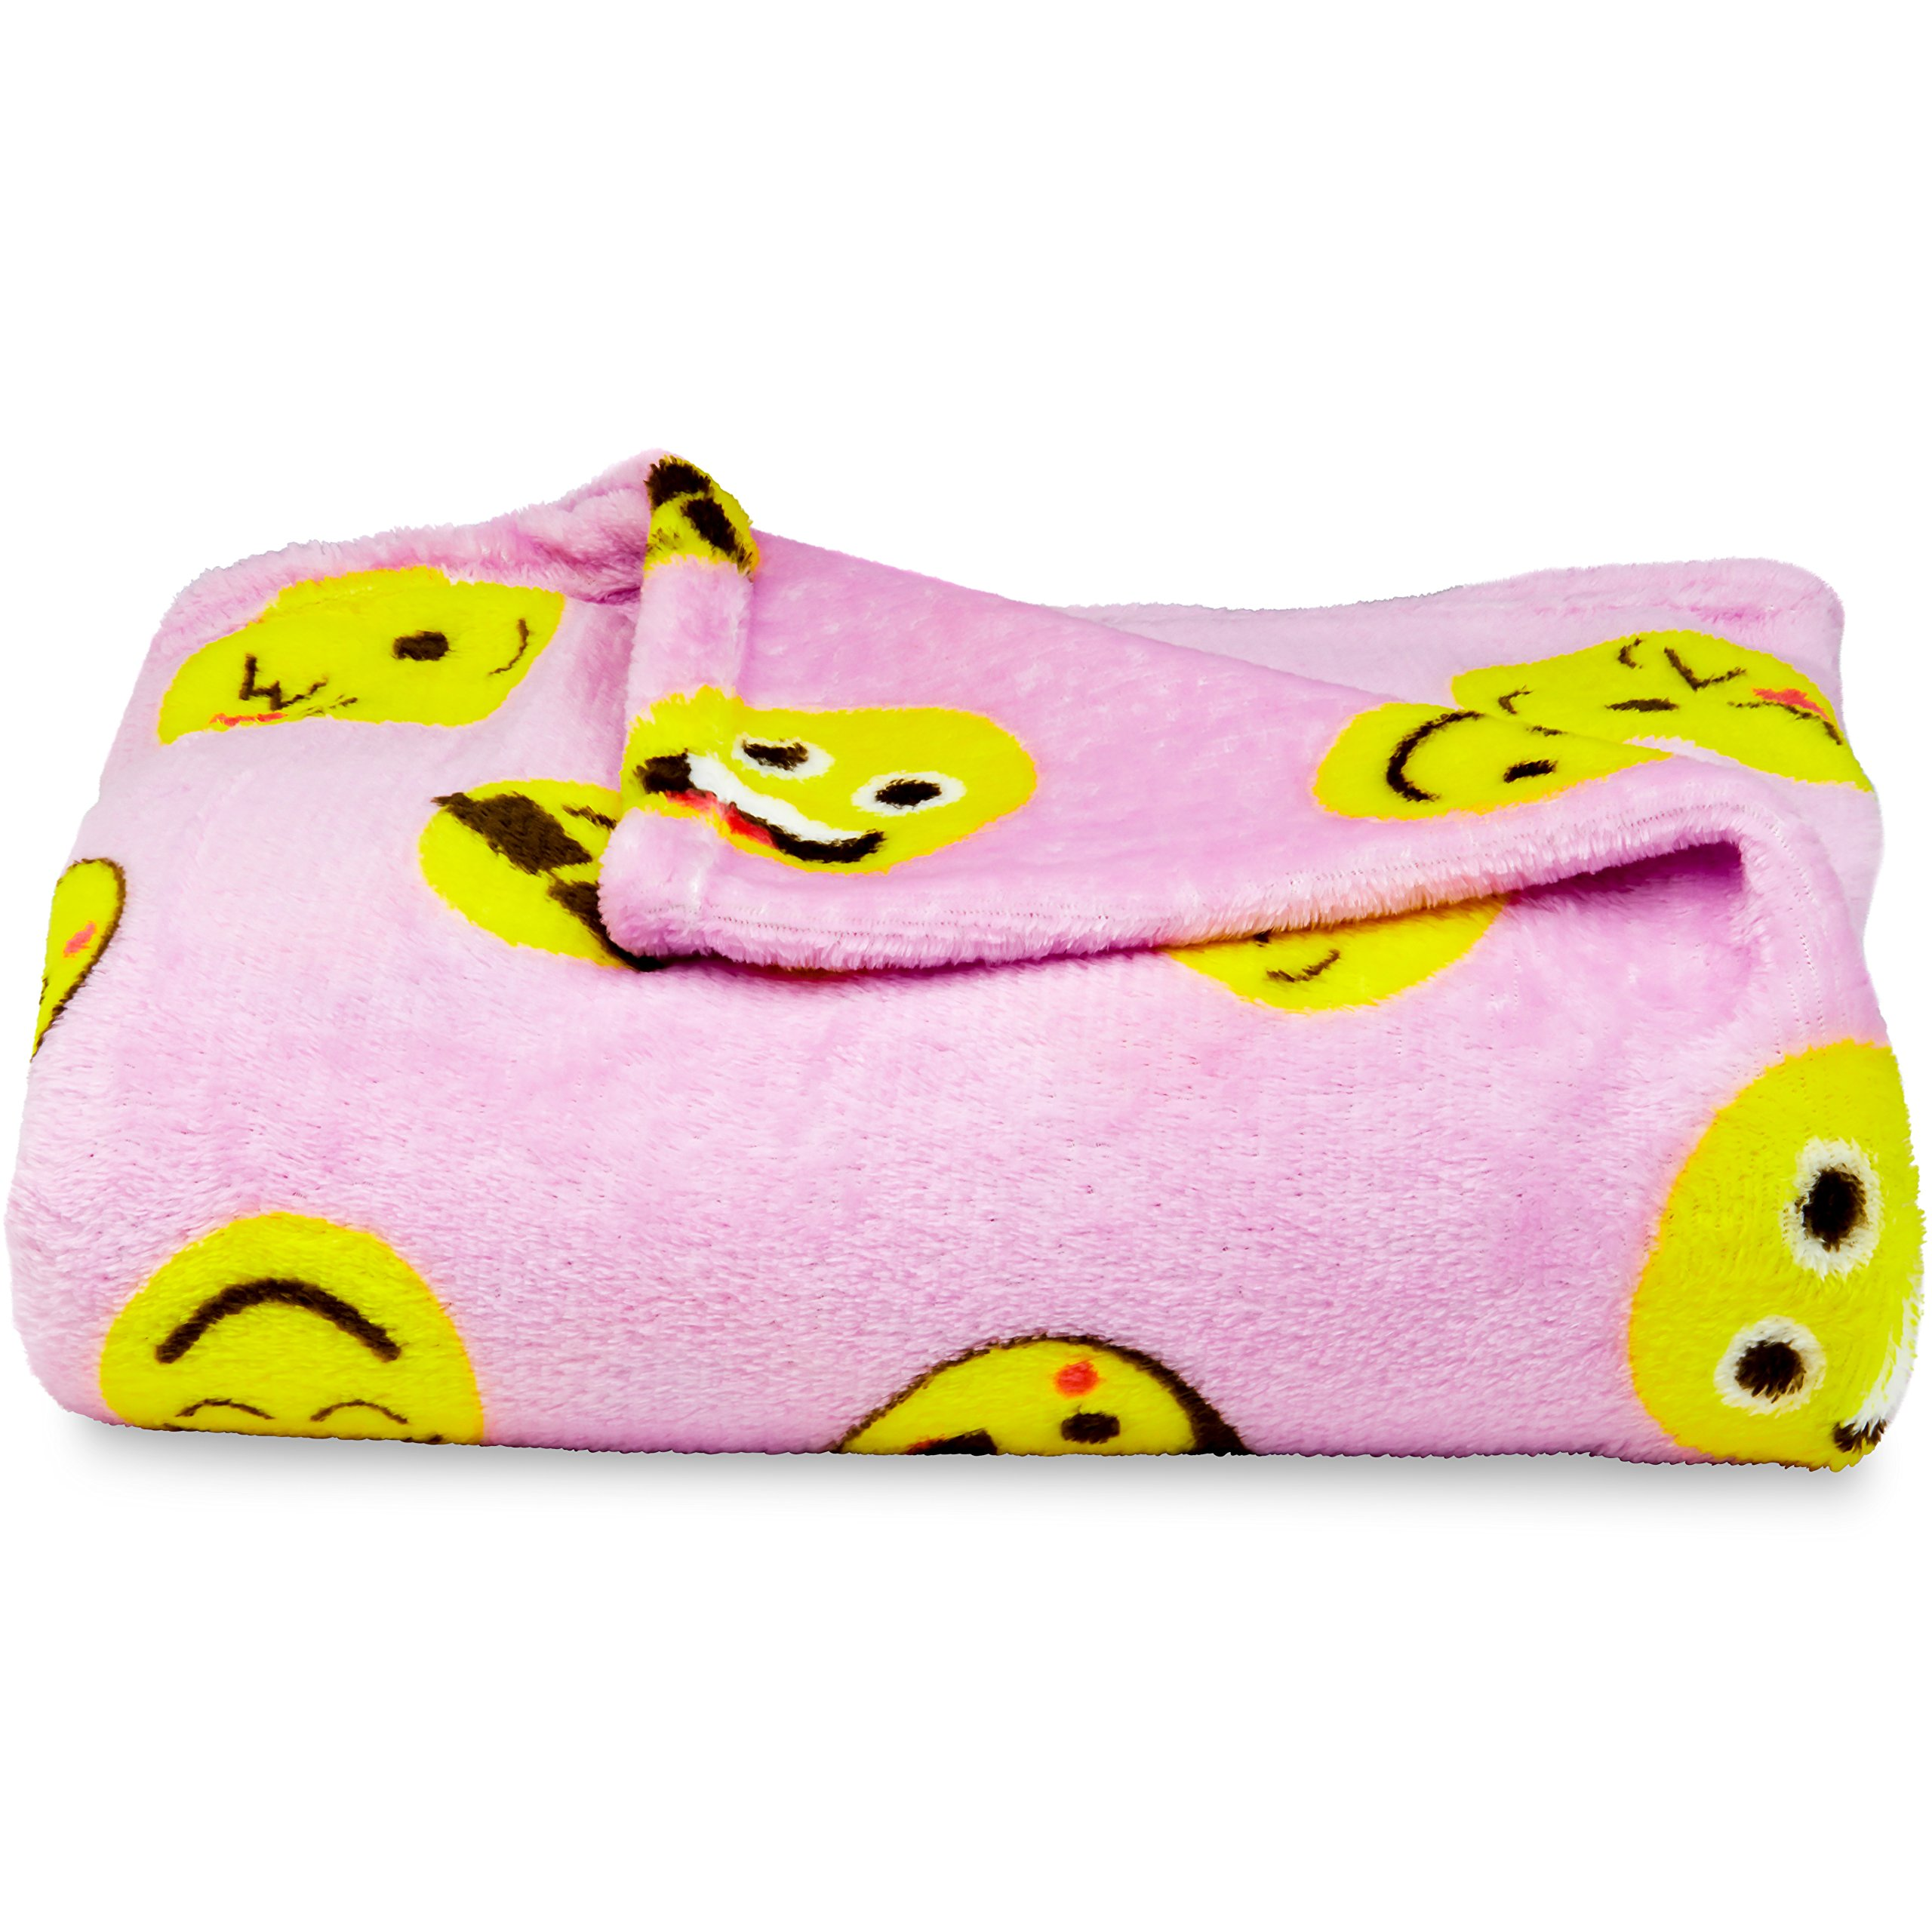 Koltose by Mash Pink Emoji Throw Blanket, Adorable Soft Large Fluffy Lightweight Emoticon Blanket for Girls and Boys, Toddlers Kids Teens and Young Adults (50in x 60in) by Koltose by Mash (Image #4)